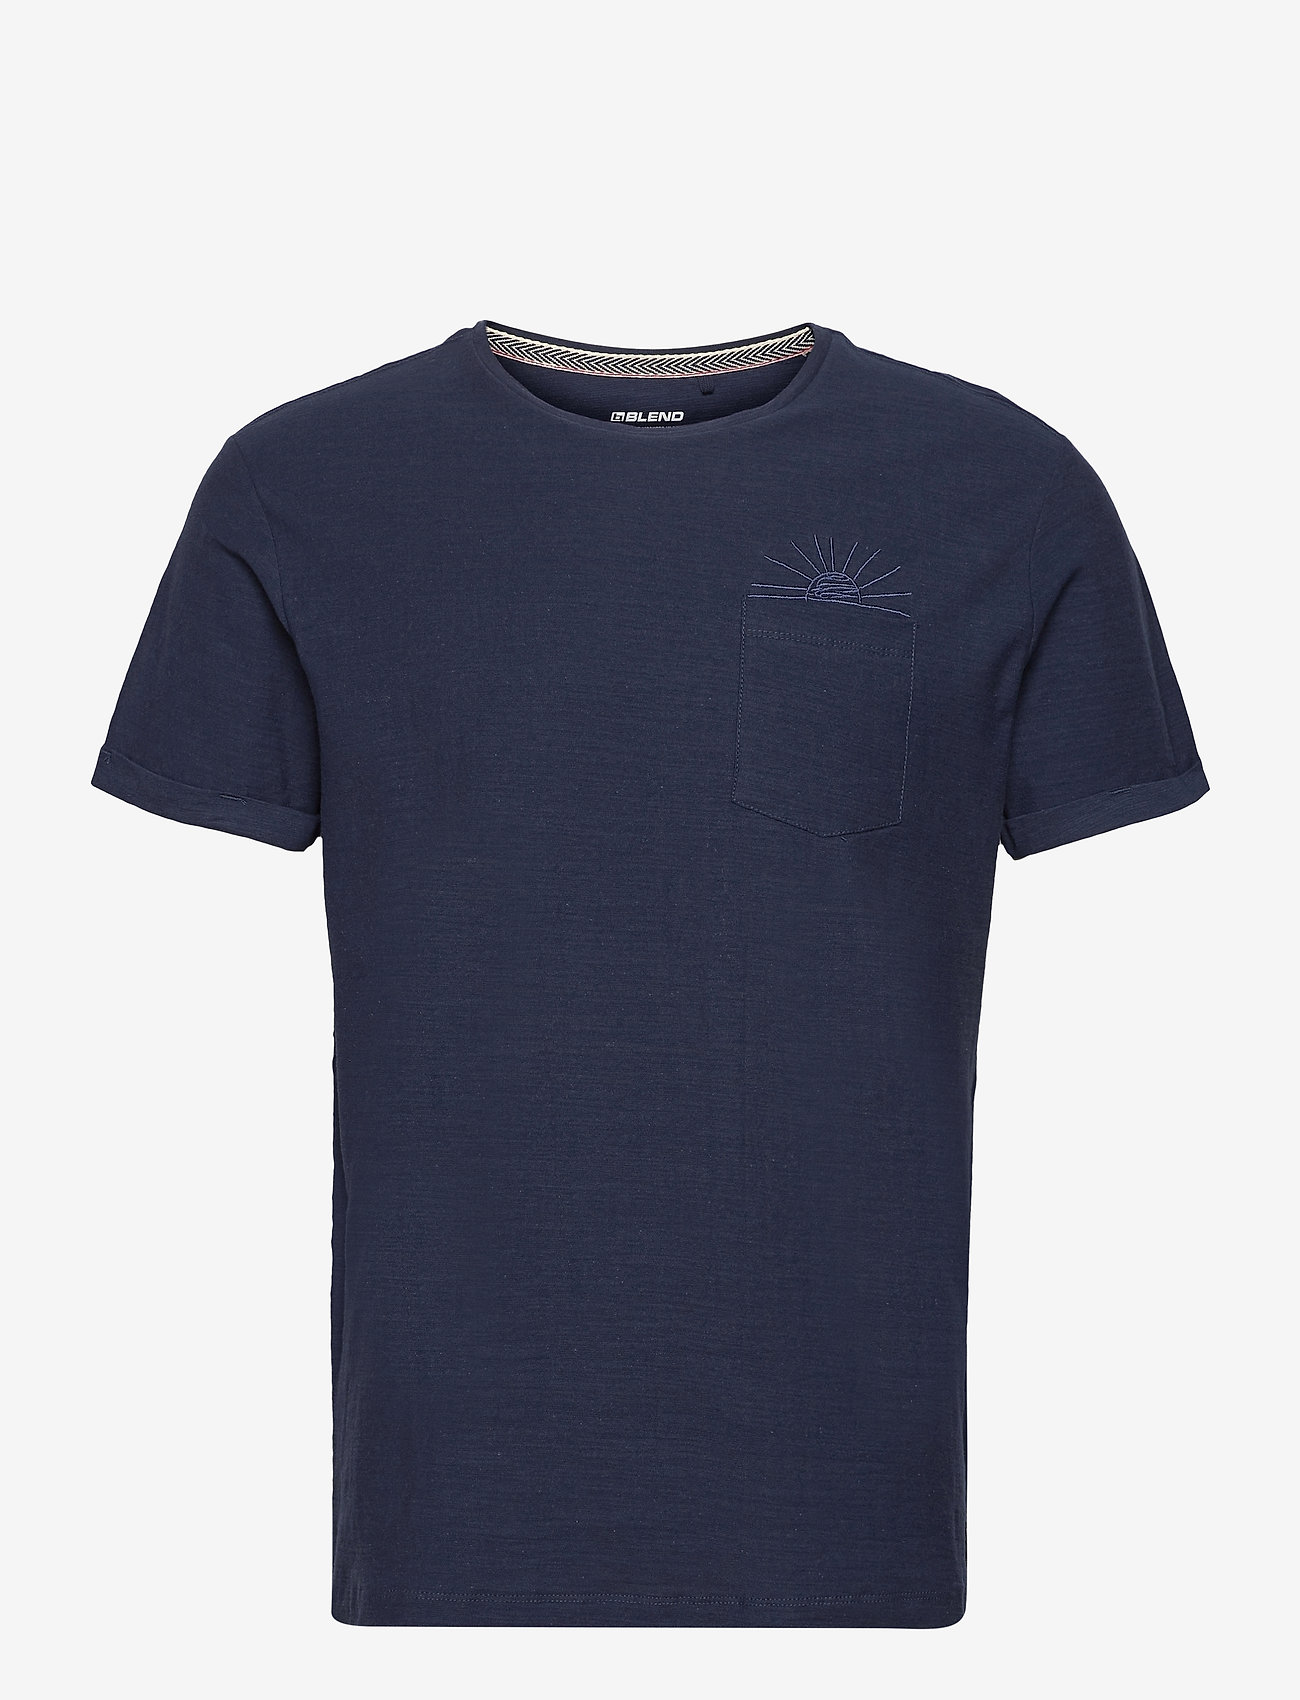 Blend - Tee - basic t-shirts - dress blues - 0